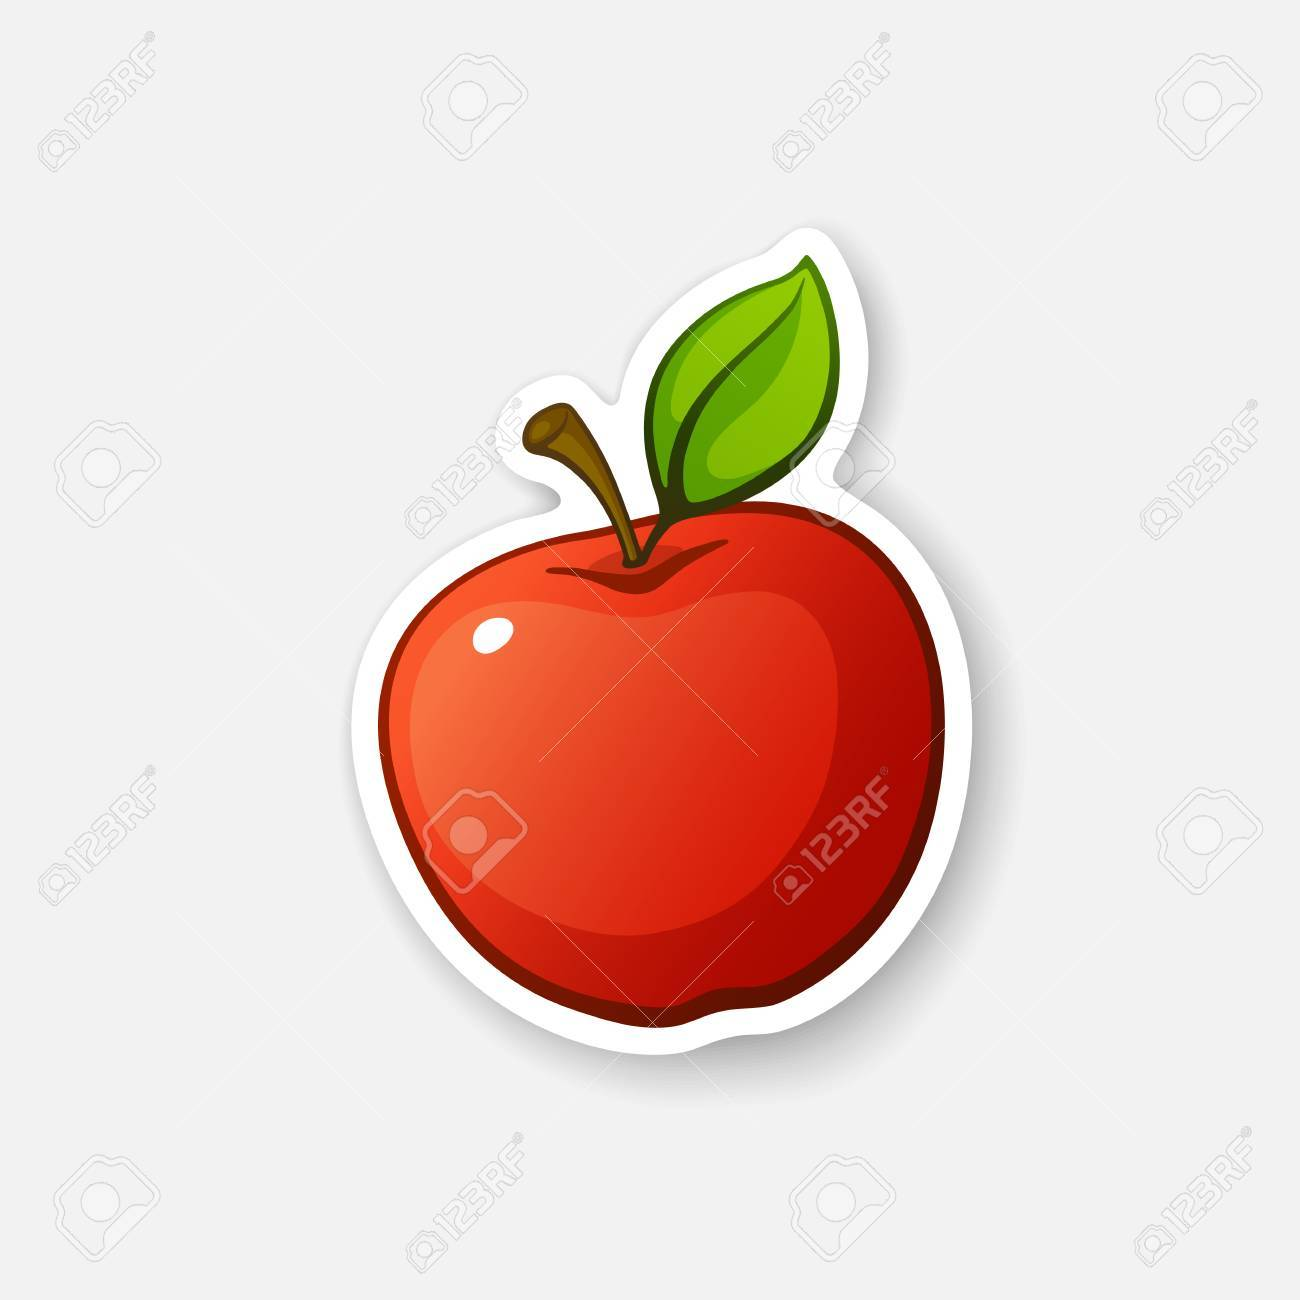 Vector illustration red apple with stem and leaf healthy red apple with stem and leaf healthy vegetarian food cartoon sticker in comics style with contour decoration for greeting cards posters patches m4hsunfo